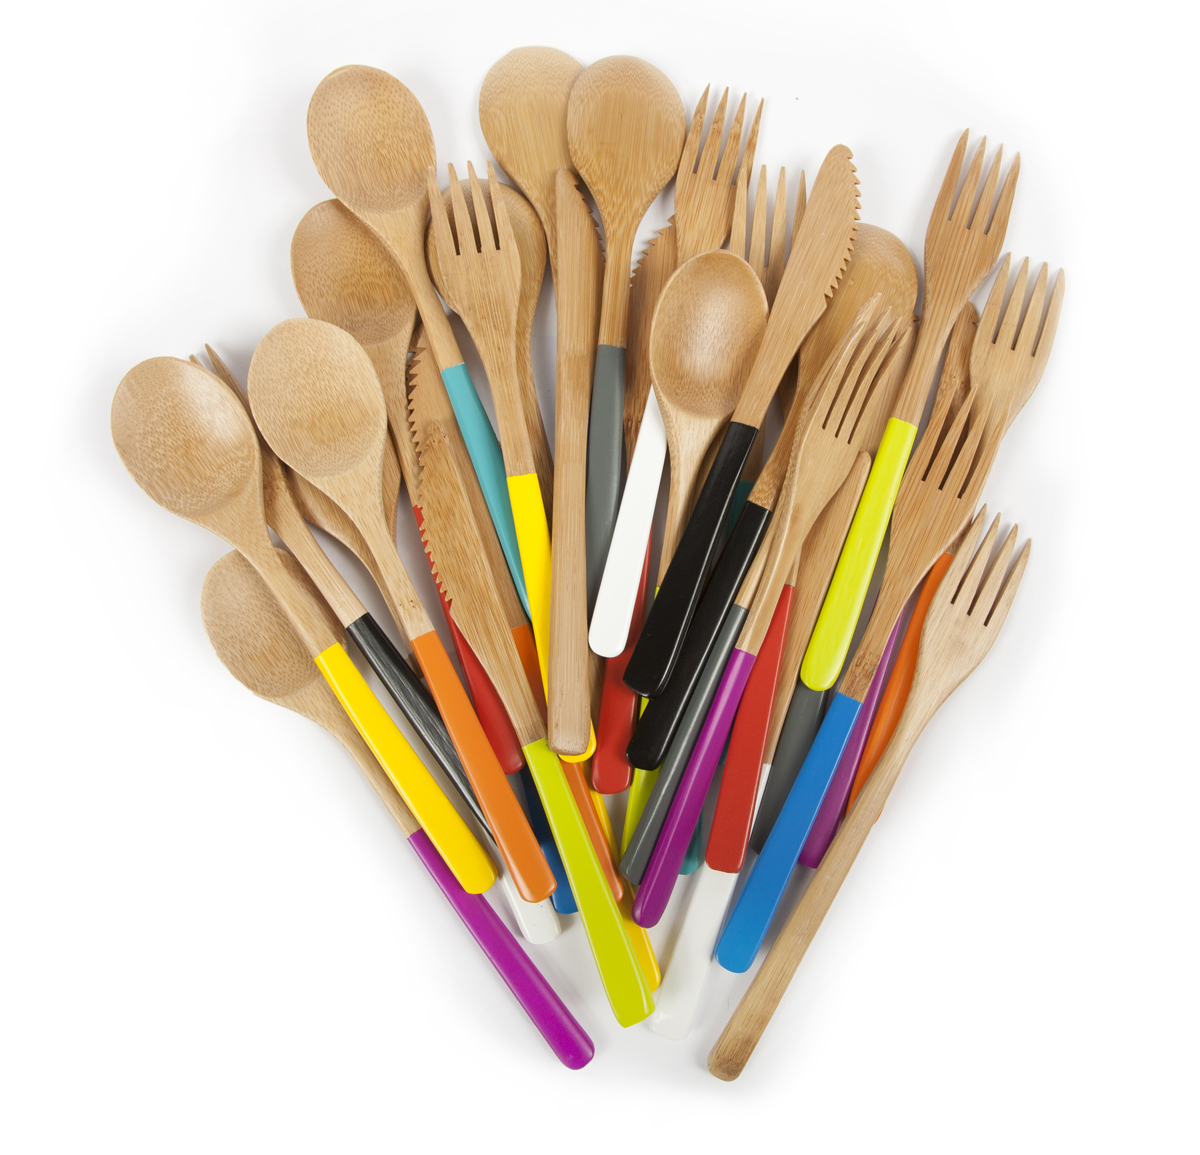 Coreu0027s Bamboo Cutlery ...  sc 1 st  Paint It What I Tell You - JGB Interiors & Find of the Week: Bamboo Cutlery! | Paint It What I Tell You